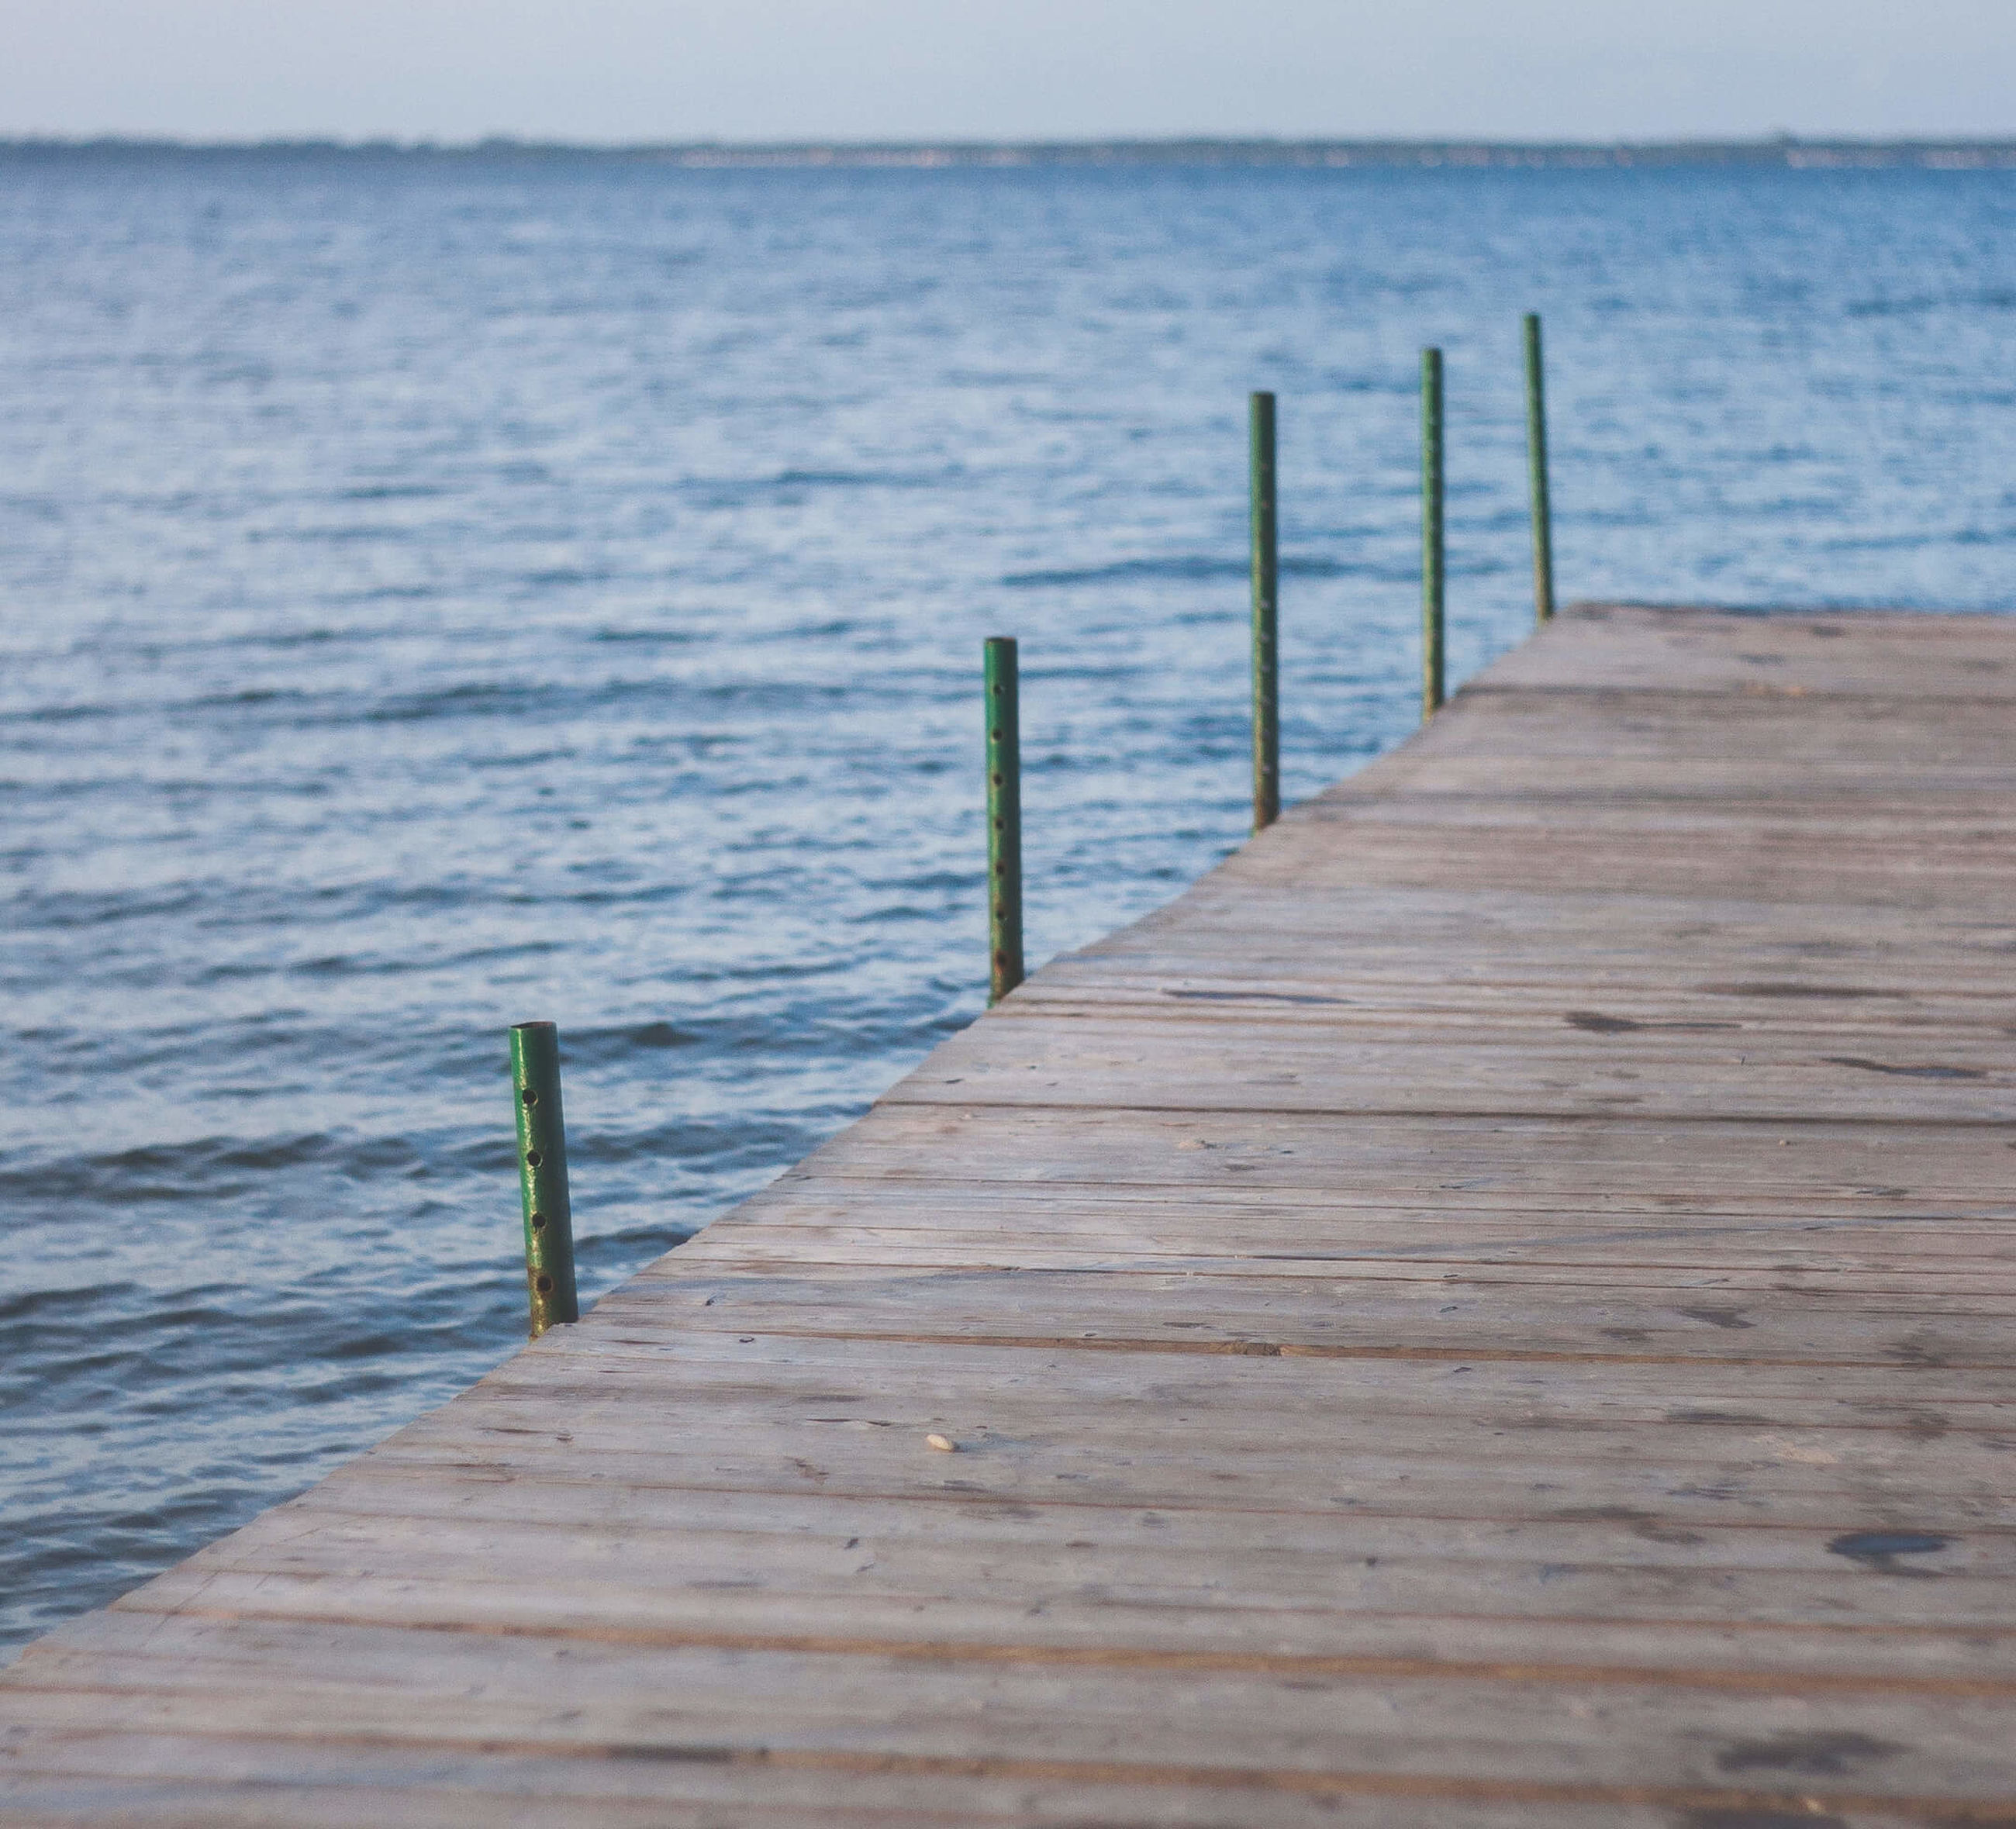 water, sea, pier, wood - material, horizon over water, scenics, railing, jetty, tranquility, nature, tranquil scene, travel destinations, boardwalk, beauty in nature, the way forward, day, non-urban scene, sky, no people, tourism, seascape, ocean